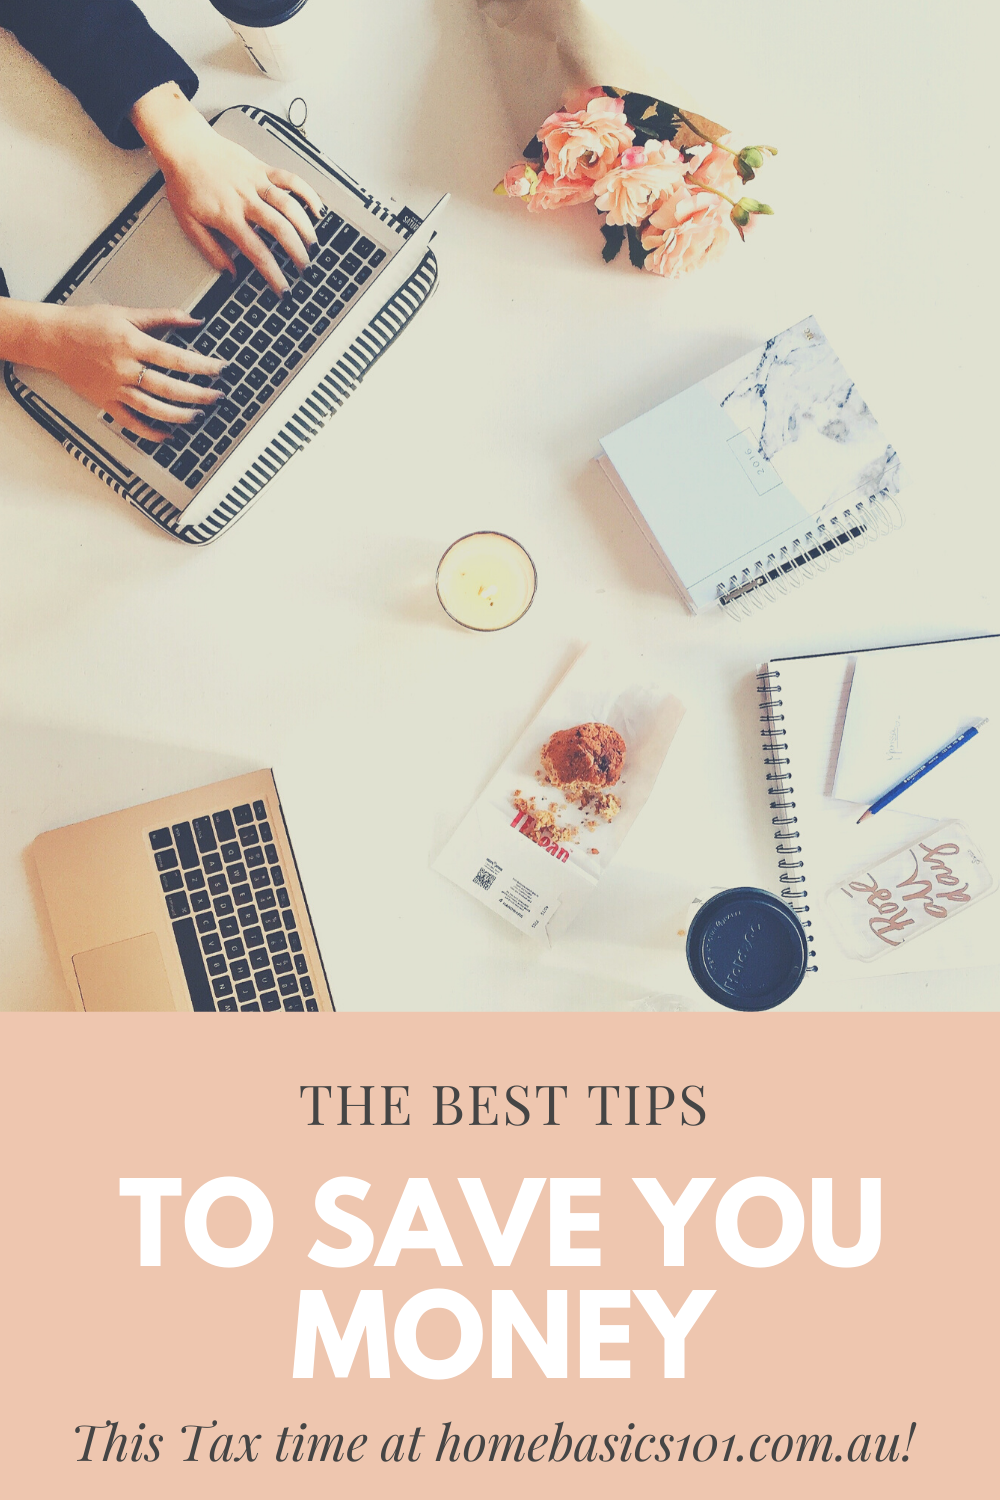 4 tips to save you money at tax time